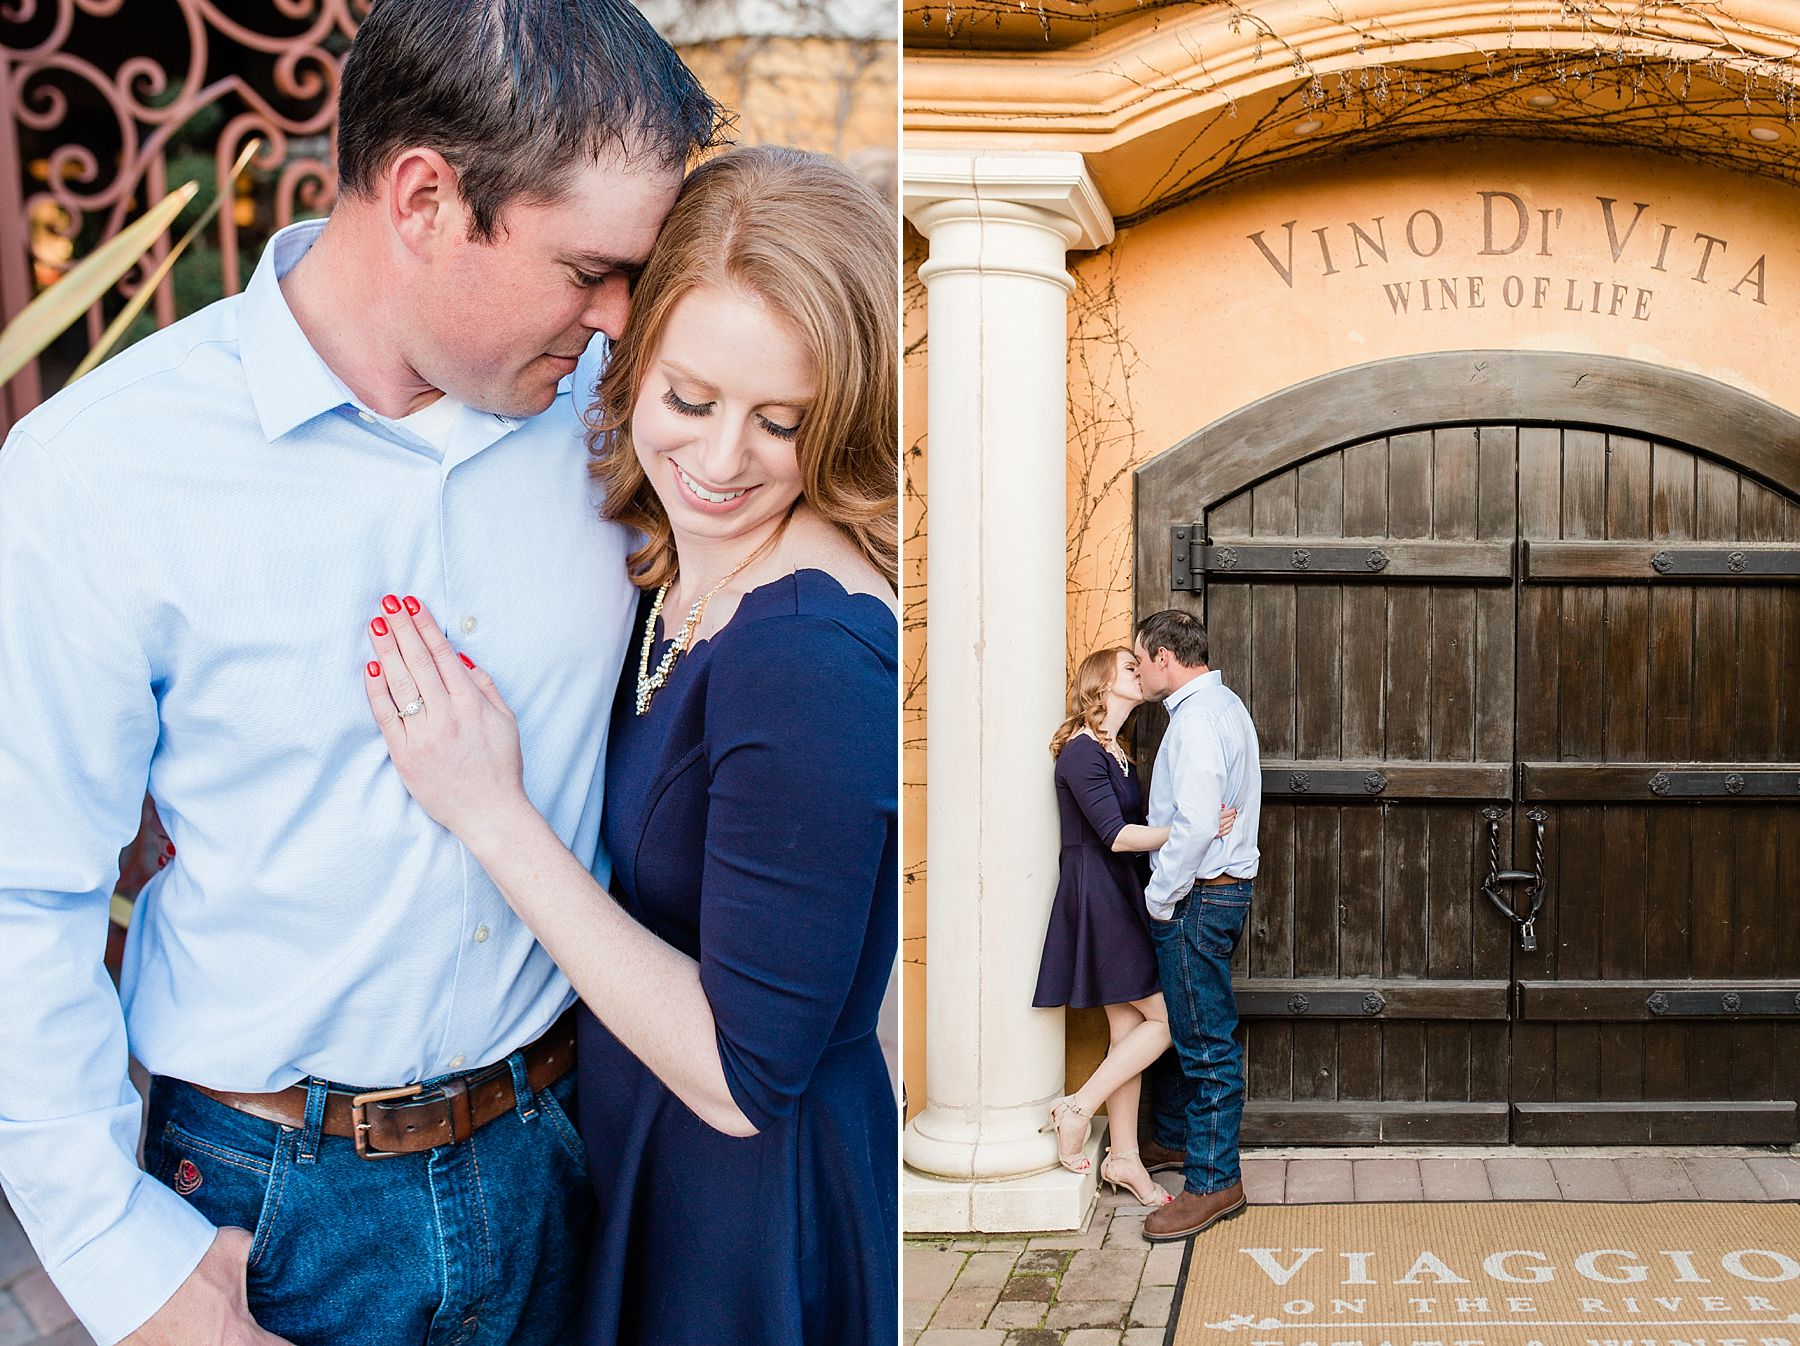 Viaggio Winery Engagement Session - Liz and TJ - Lodi Winery Wedding Photographer_0020.jpg